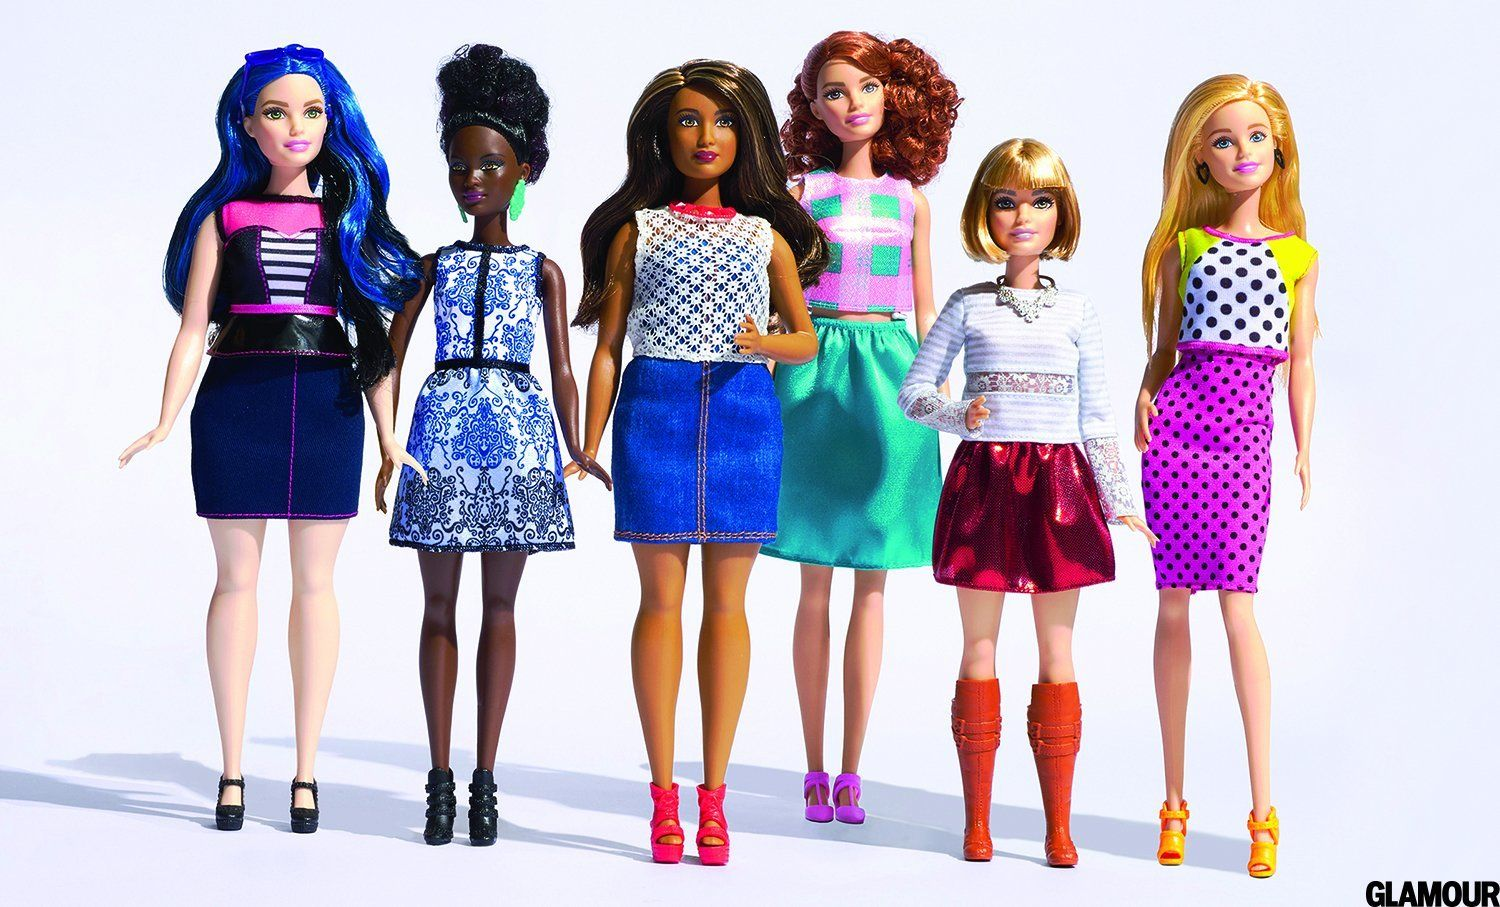 Barbie's New Body: Tall, Petite, andCurvy foto